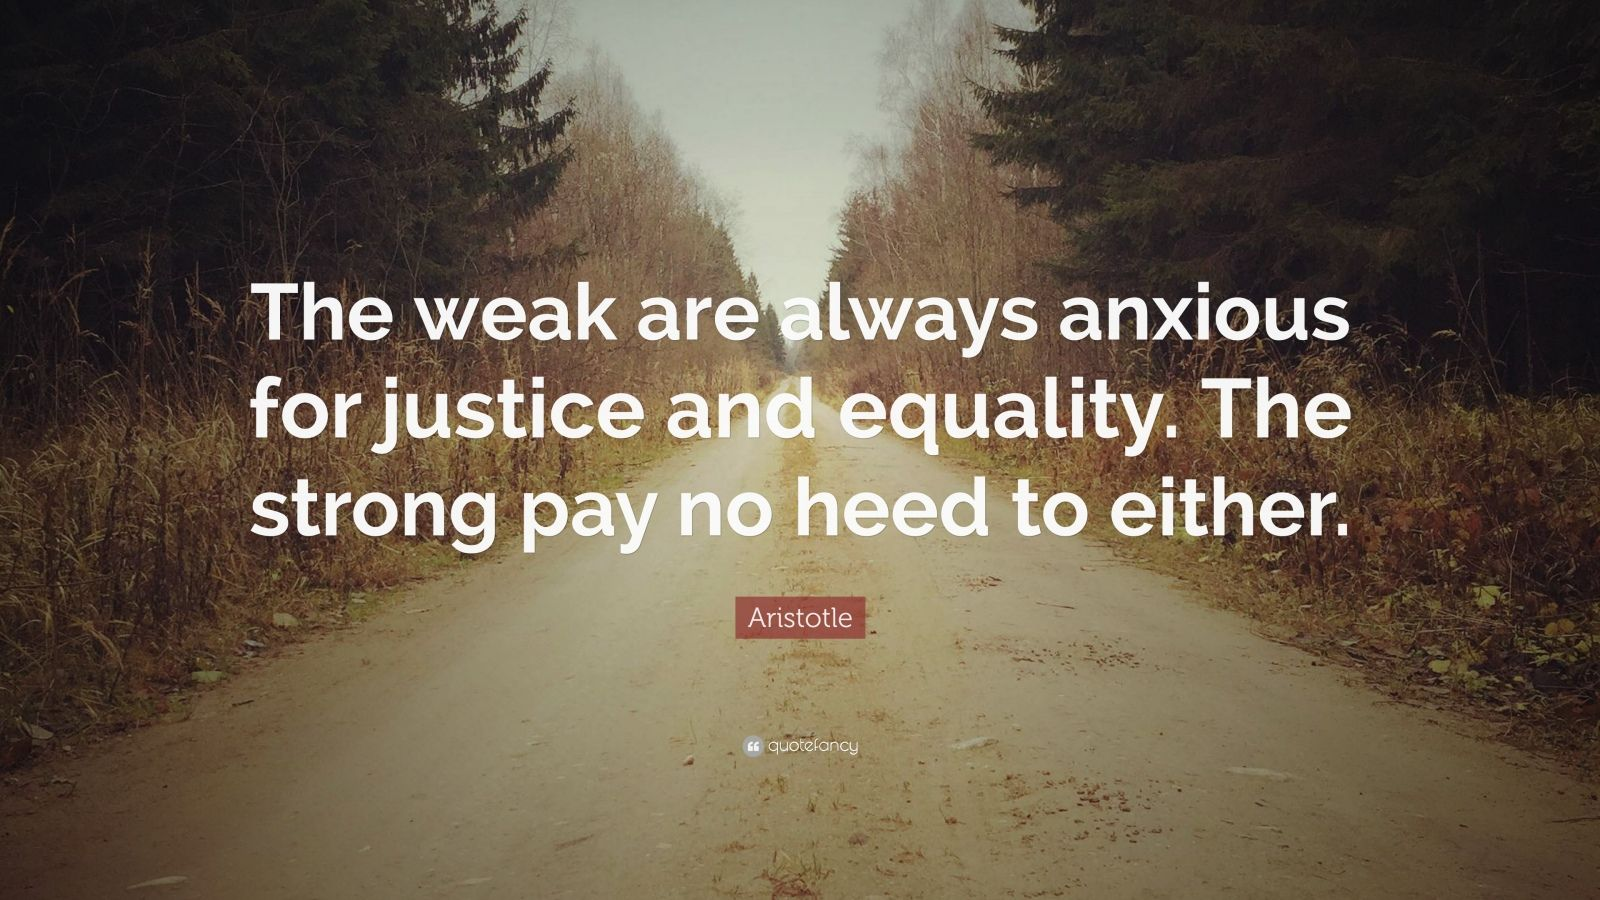 equality as defined by aristotle tecumseh